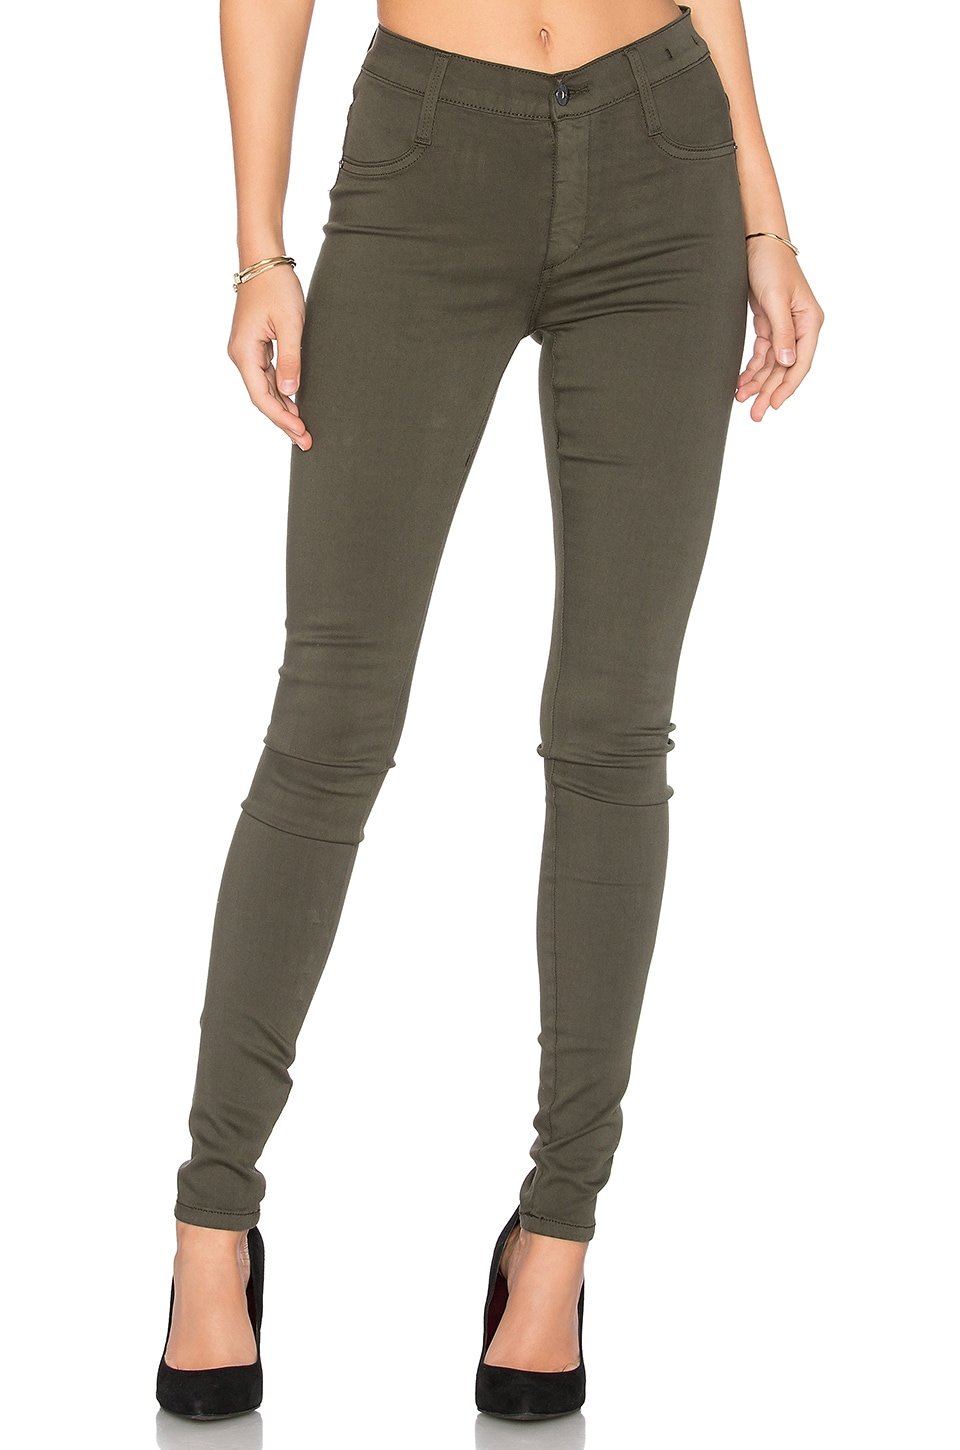 Twiggy Dancer Legging by James Jeans